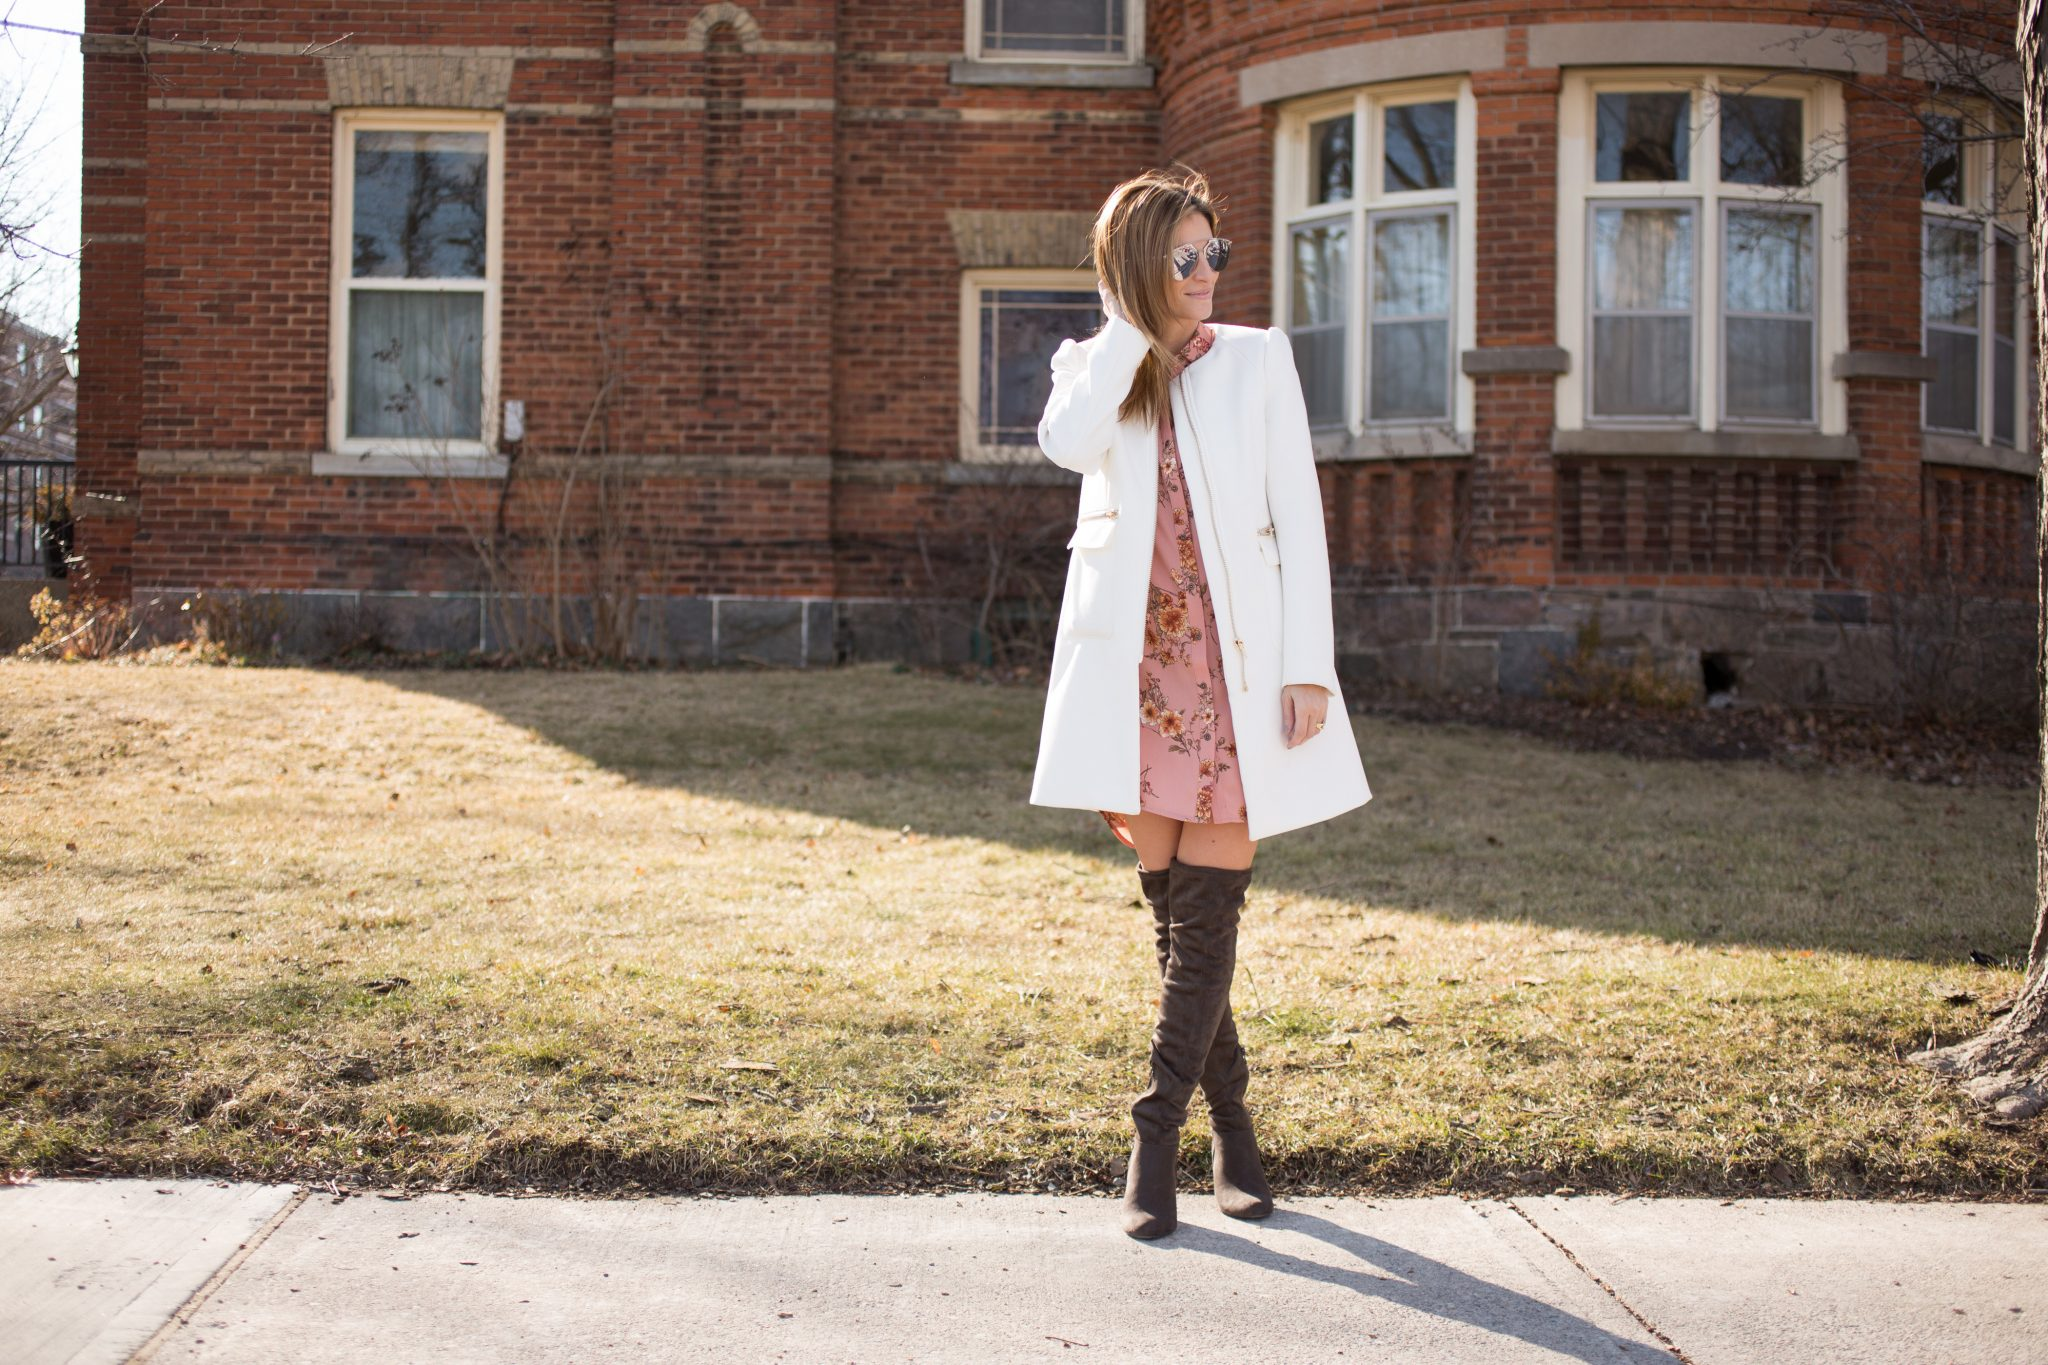 sparkleshinylove Floral Shirt Dress Forever 21, grey over the knee boots Call it Spring, White long coat H&M, Dior So-Real sunglasses